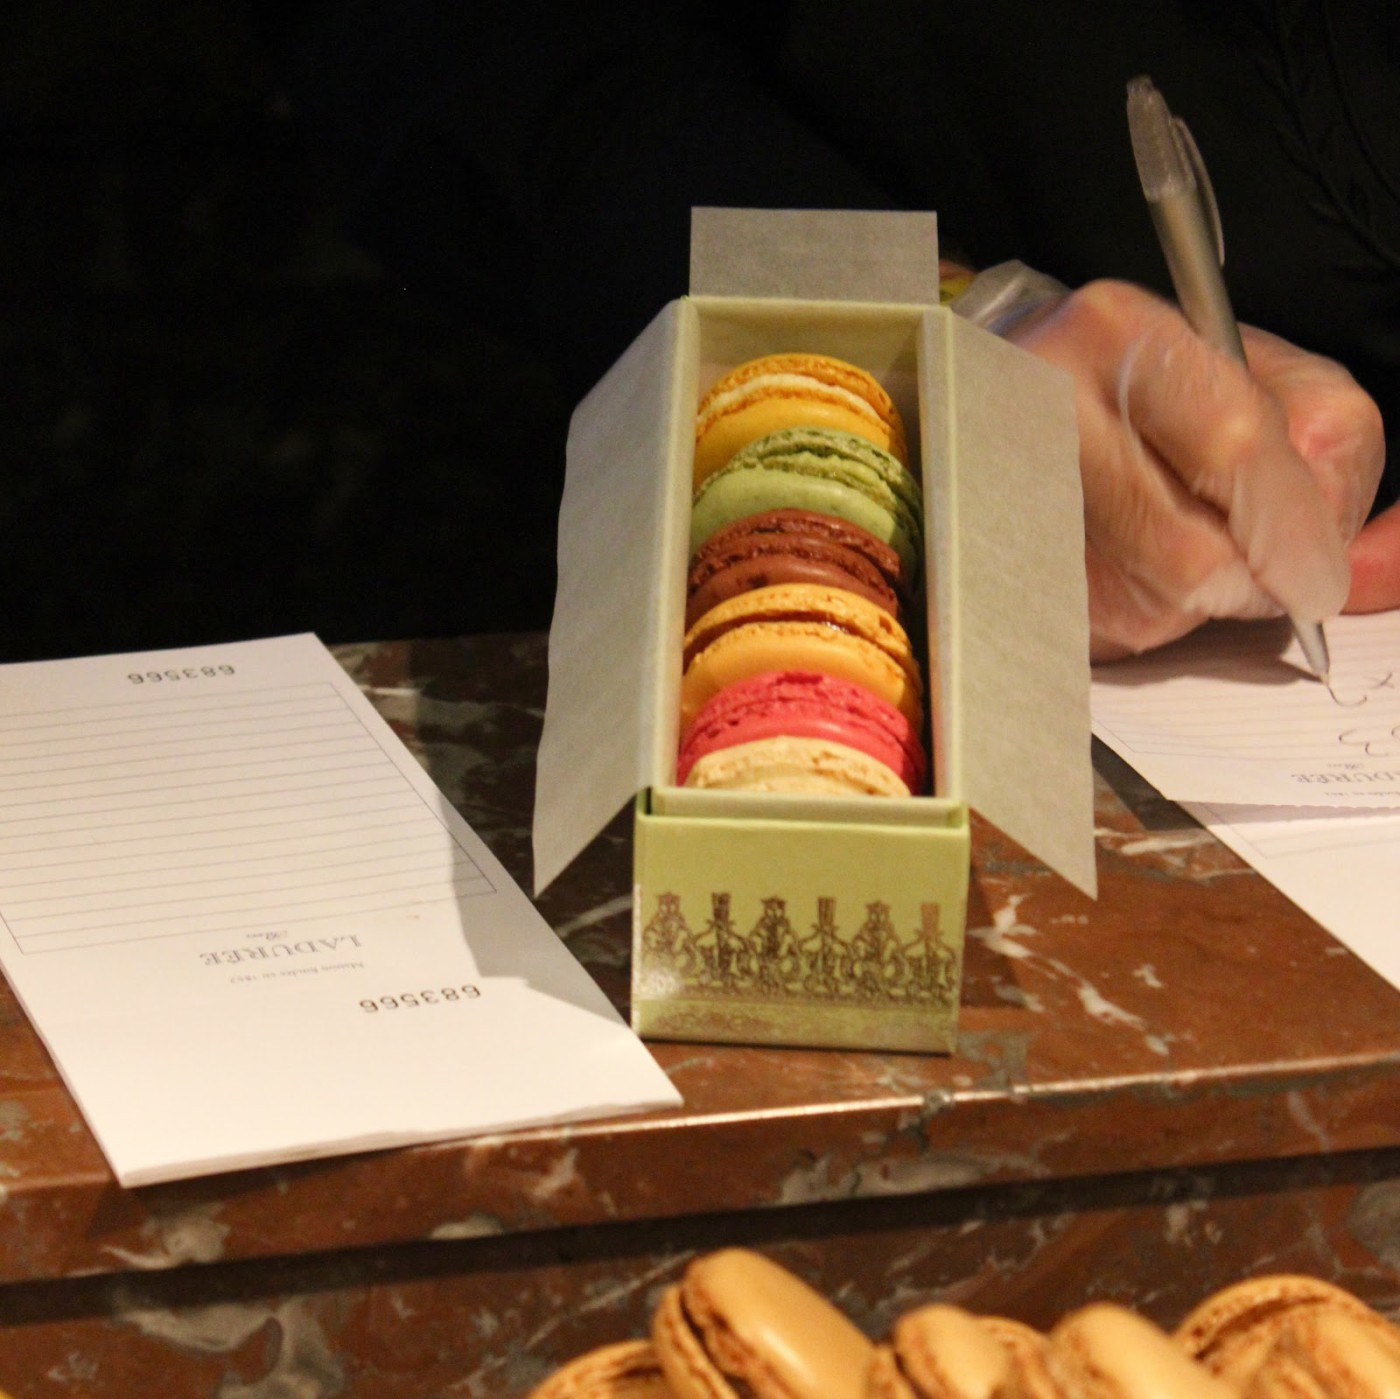 champs elysees laduree macarons paris